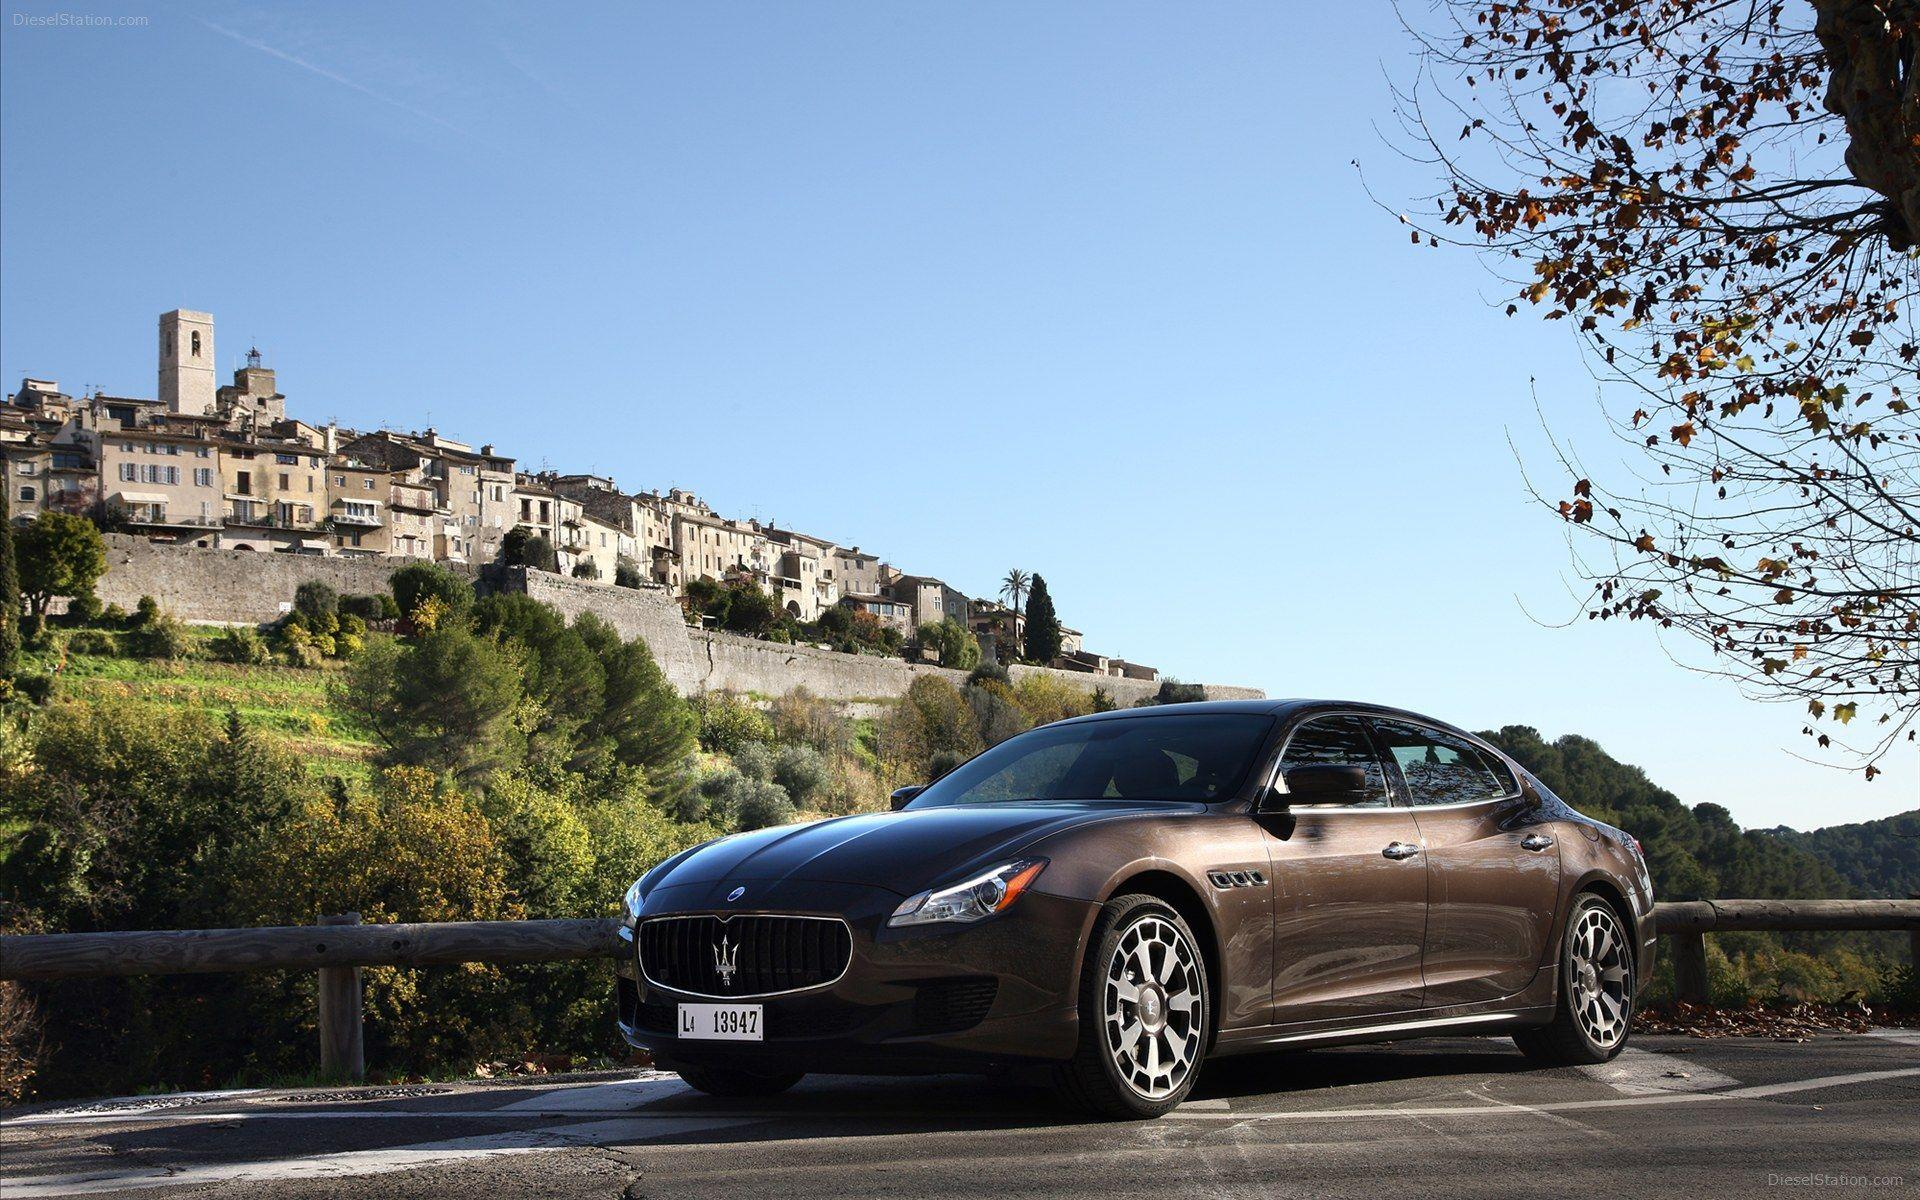 Maserati Quattroporte 2013 Widescreen Exotic Car Wallpapers #32 of ...